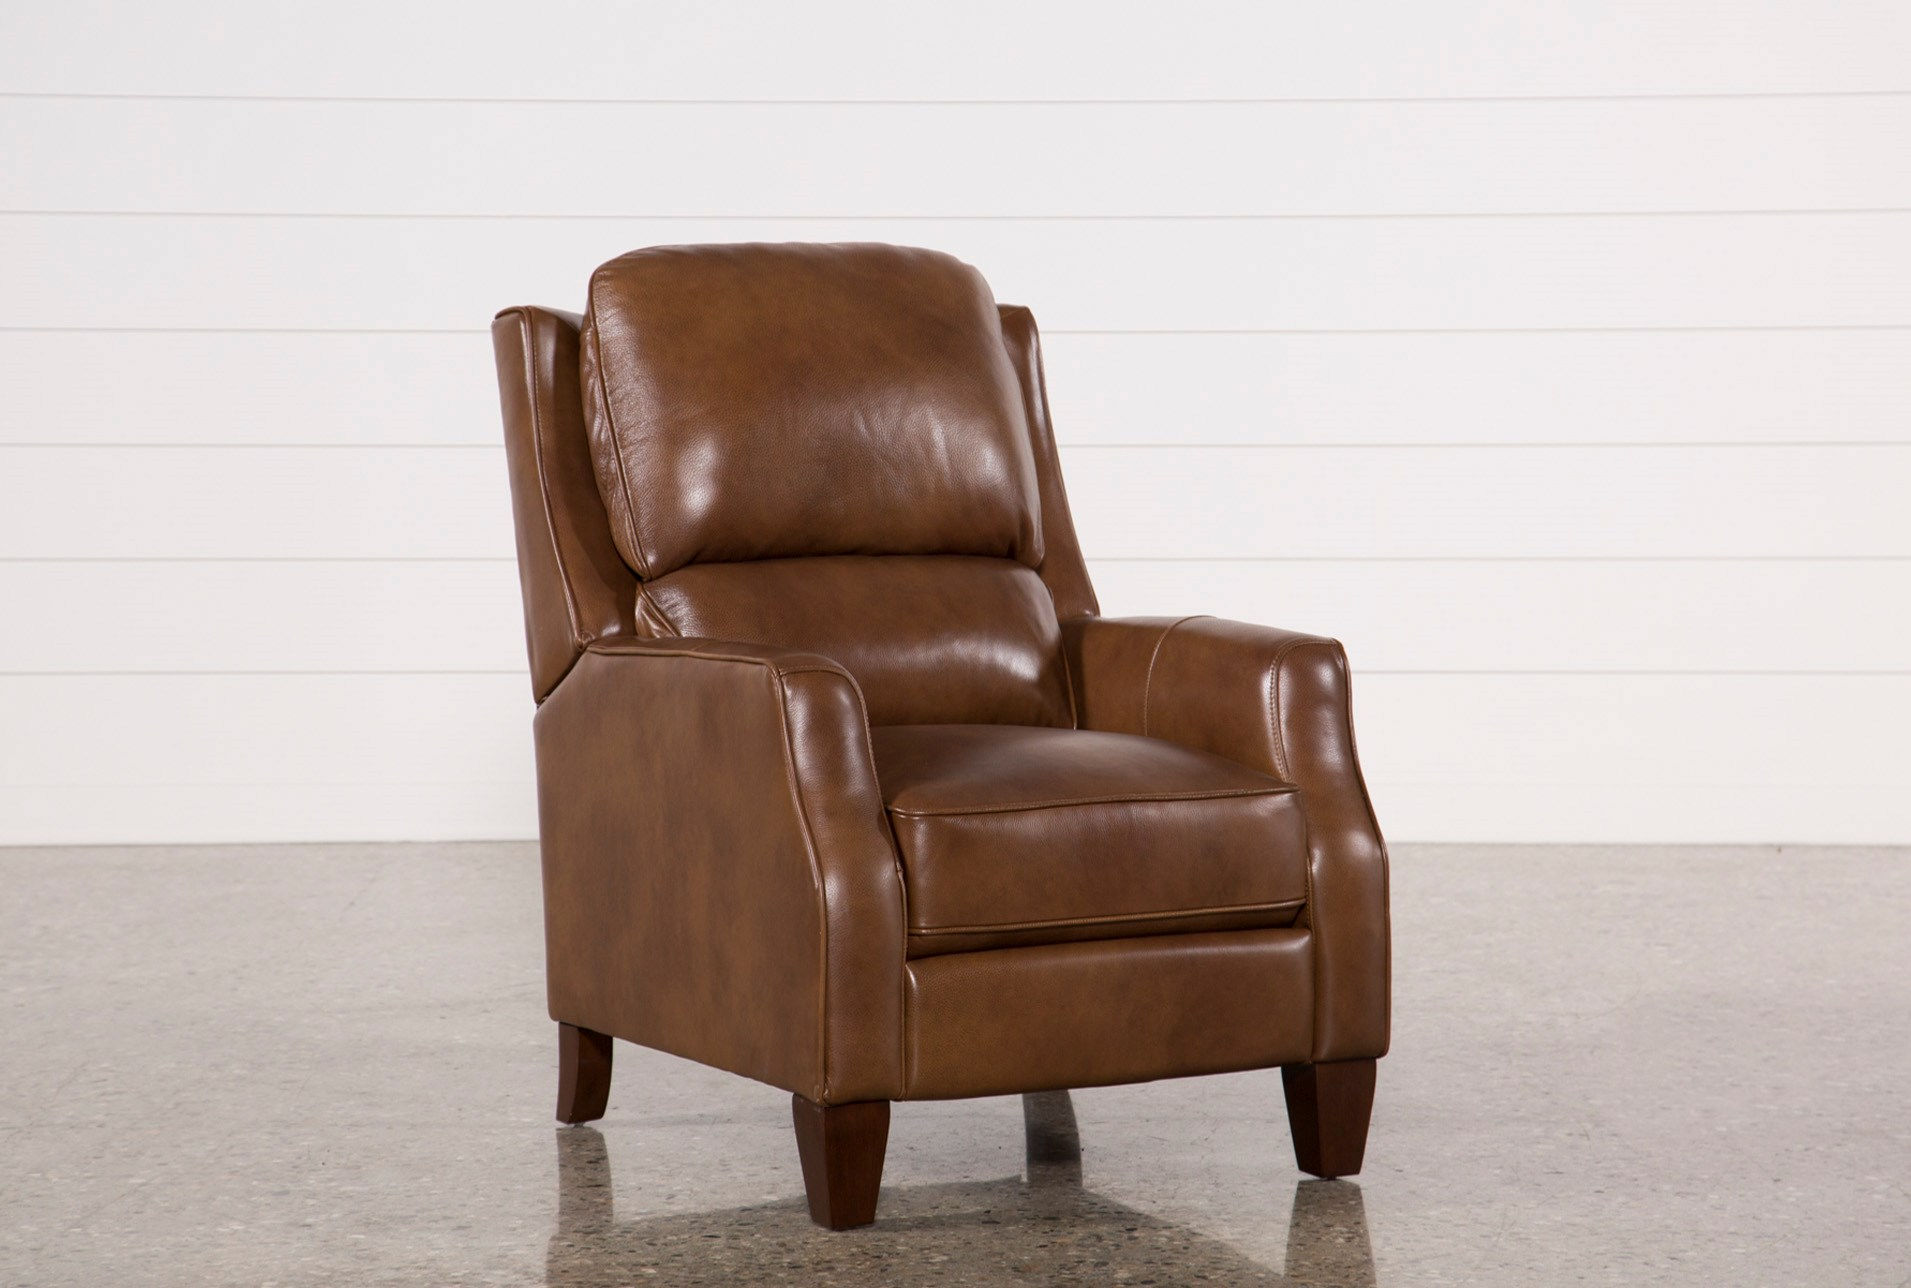 room living us leather chairs recliners and allen low ethan leg null fabric furniture shop recliner en